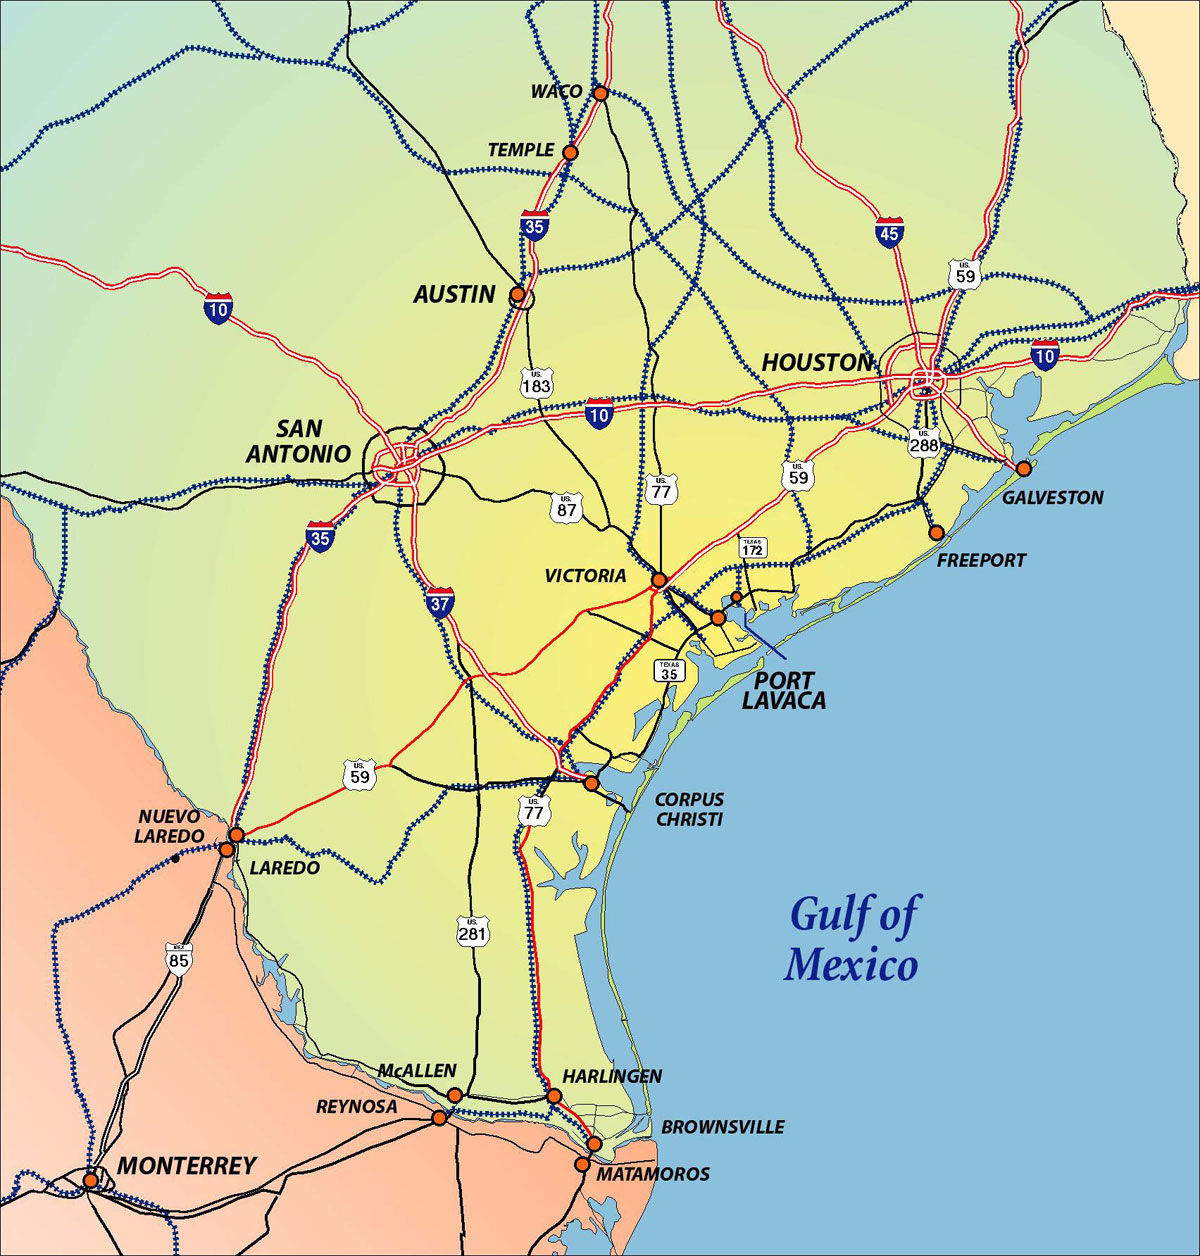 Texas Gulf Coast Maps And Travel Information | Download Free Texas - Map Of Texas Coast